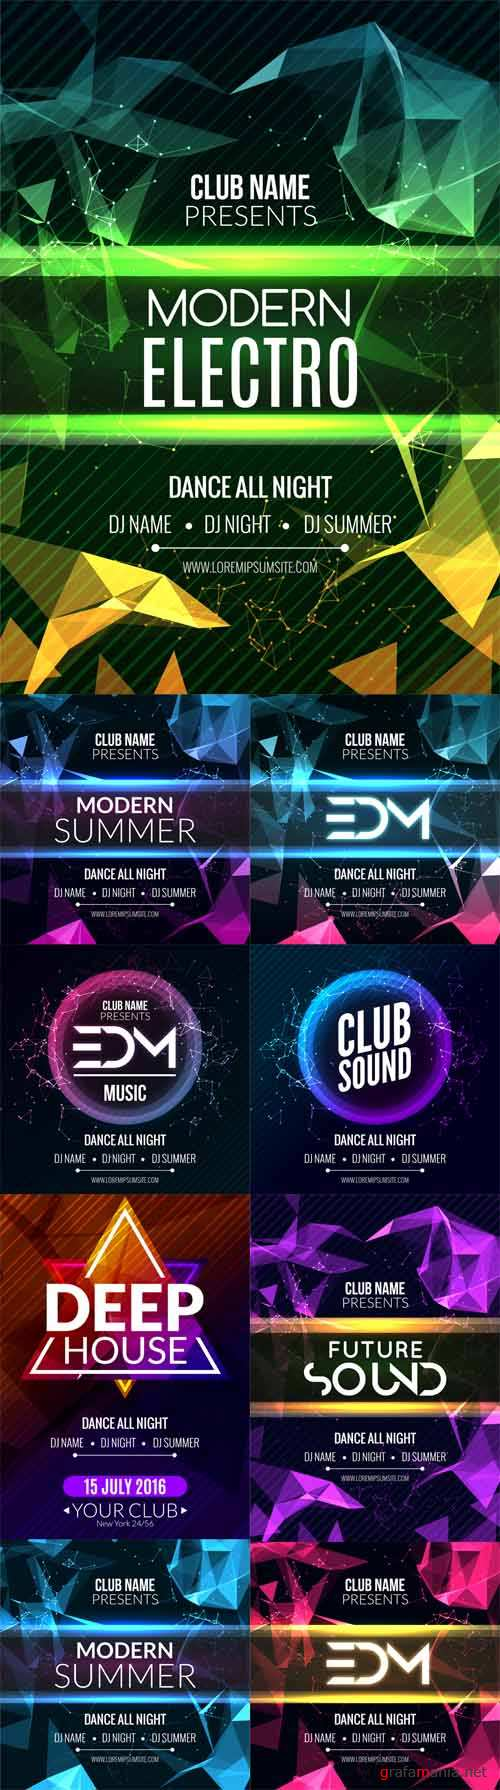 Vector Modern Electro Music Party Template Dance Party Flyers